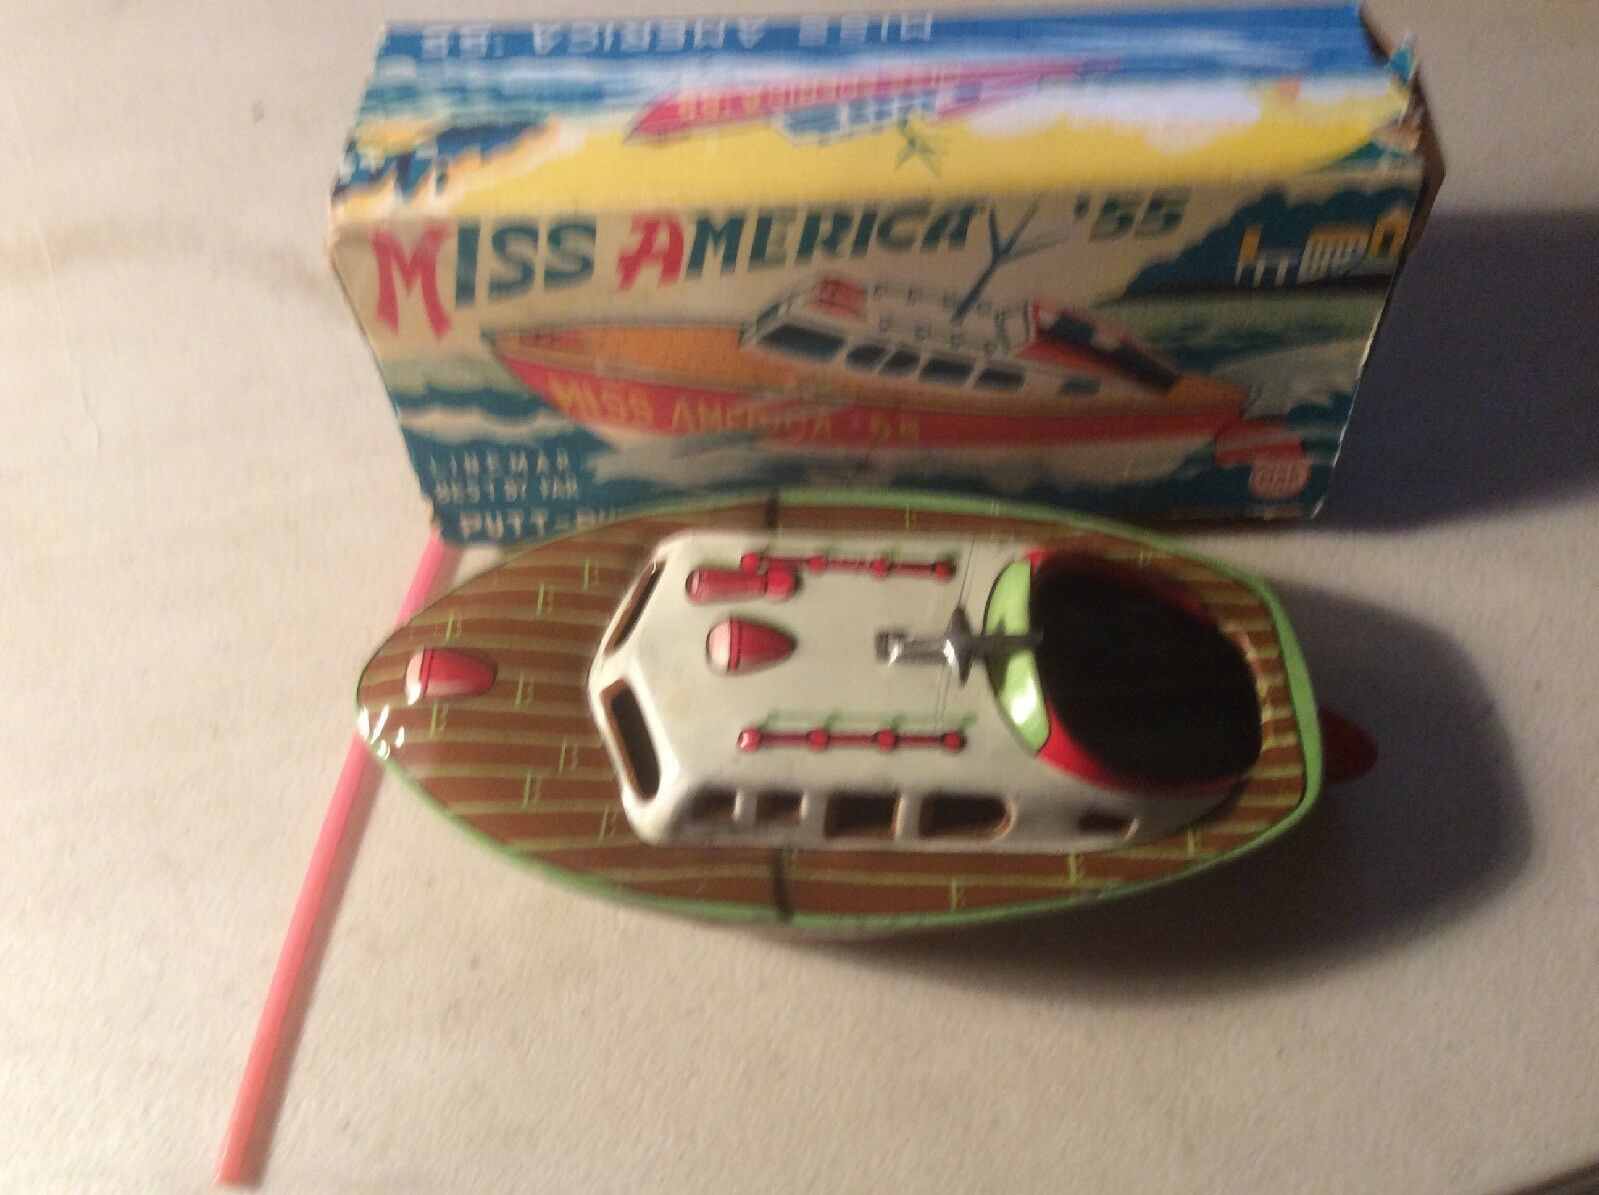 Marx Linemar Miss America 55 Tin leksak Boat Japan With Box and Straw, Excellent